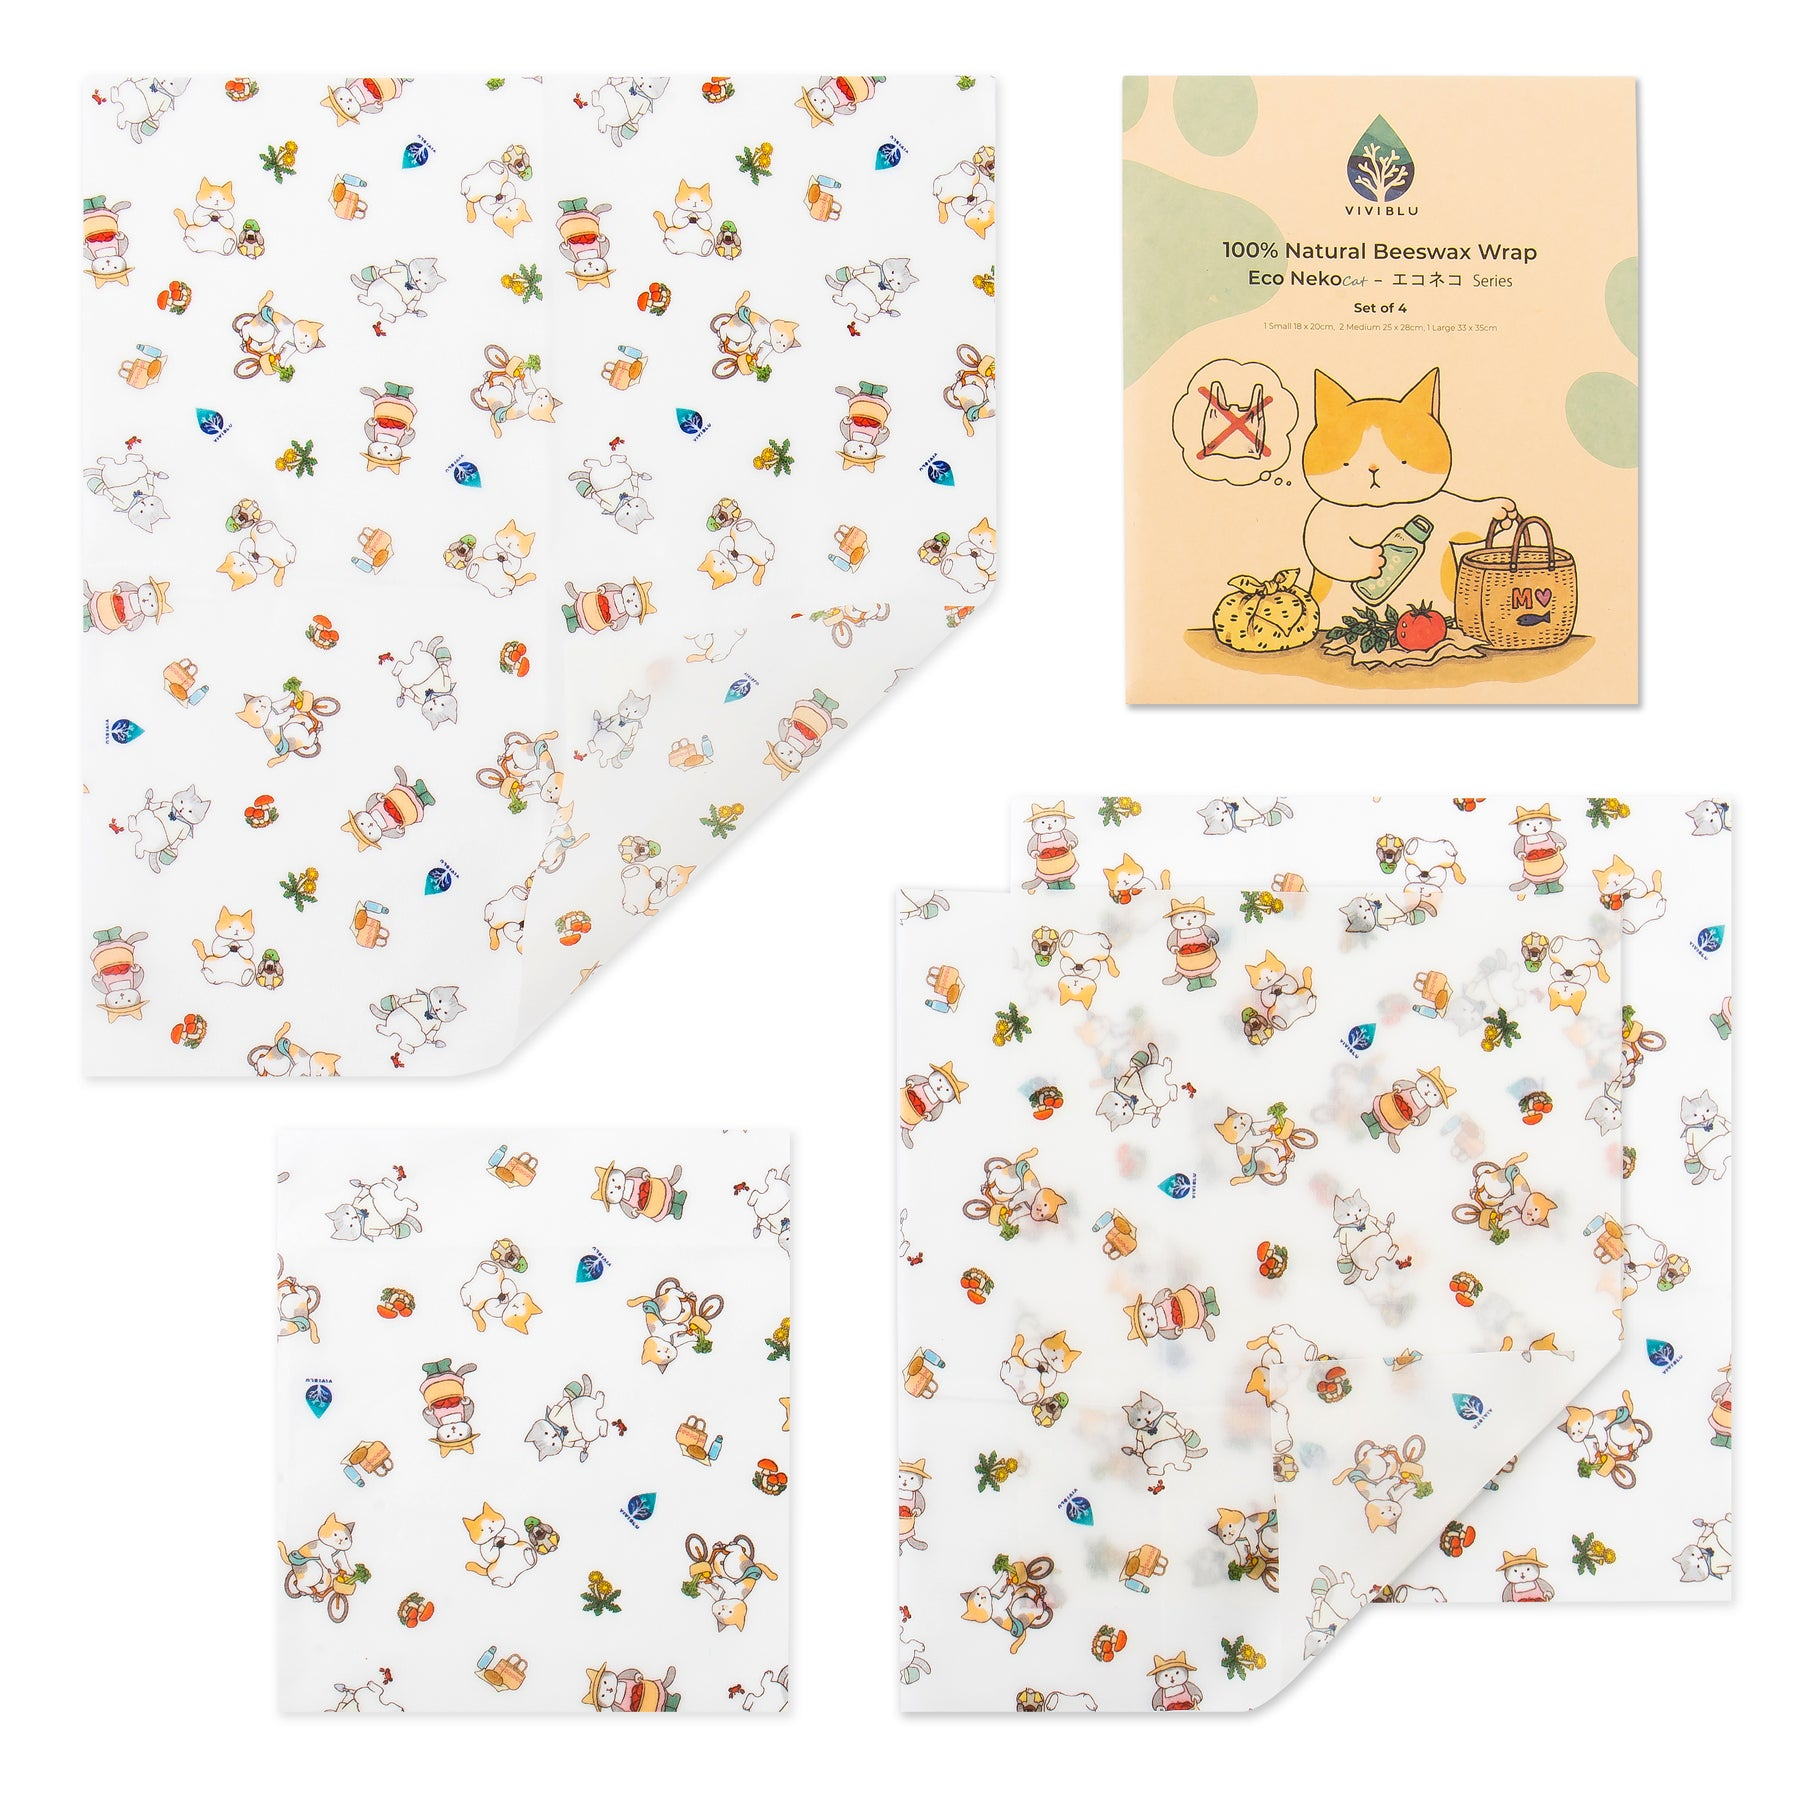 La pellicola in Cera d'api - Eco Neko(Gatto) Design Beeswax Wrap